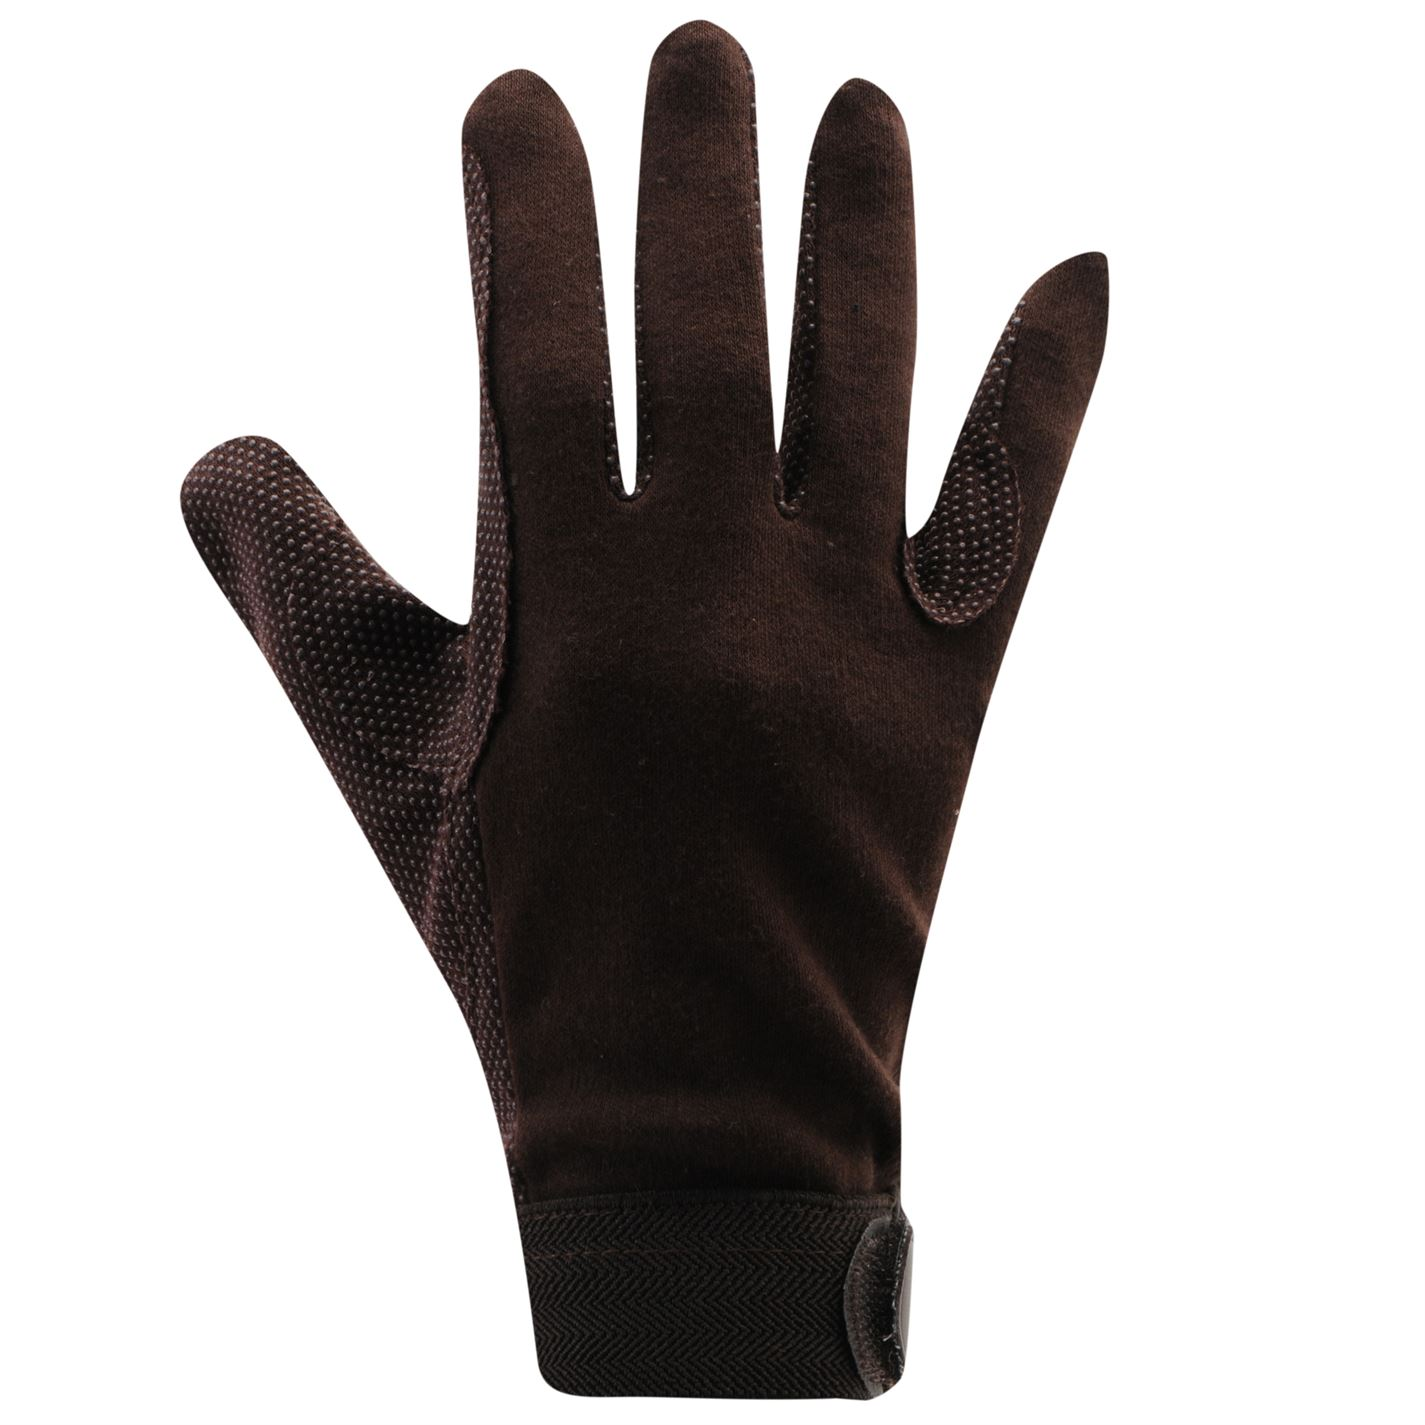 Requisite Womens Gloves Cotton Grip Riding Glove Robinsons New